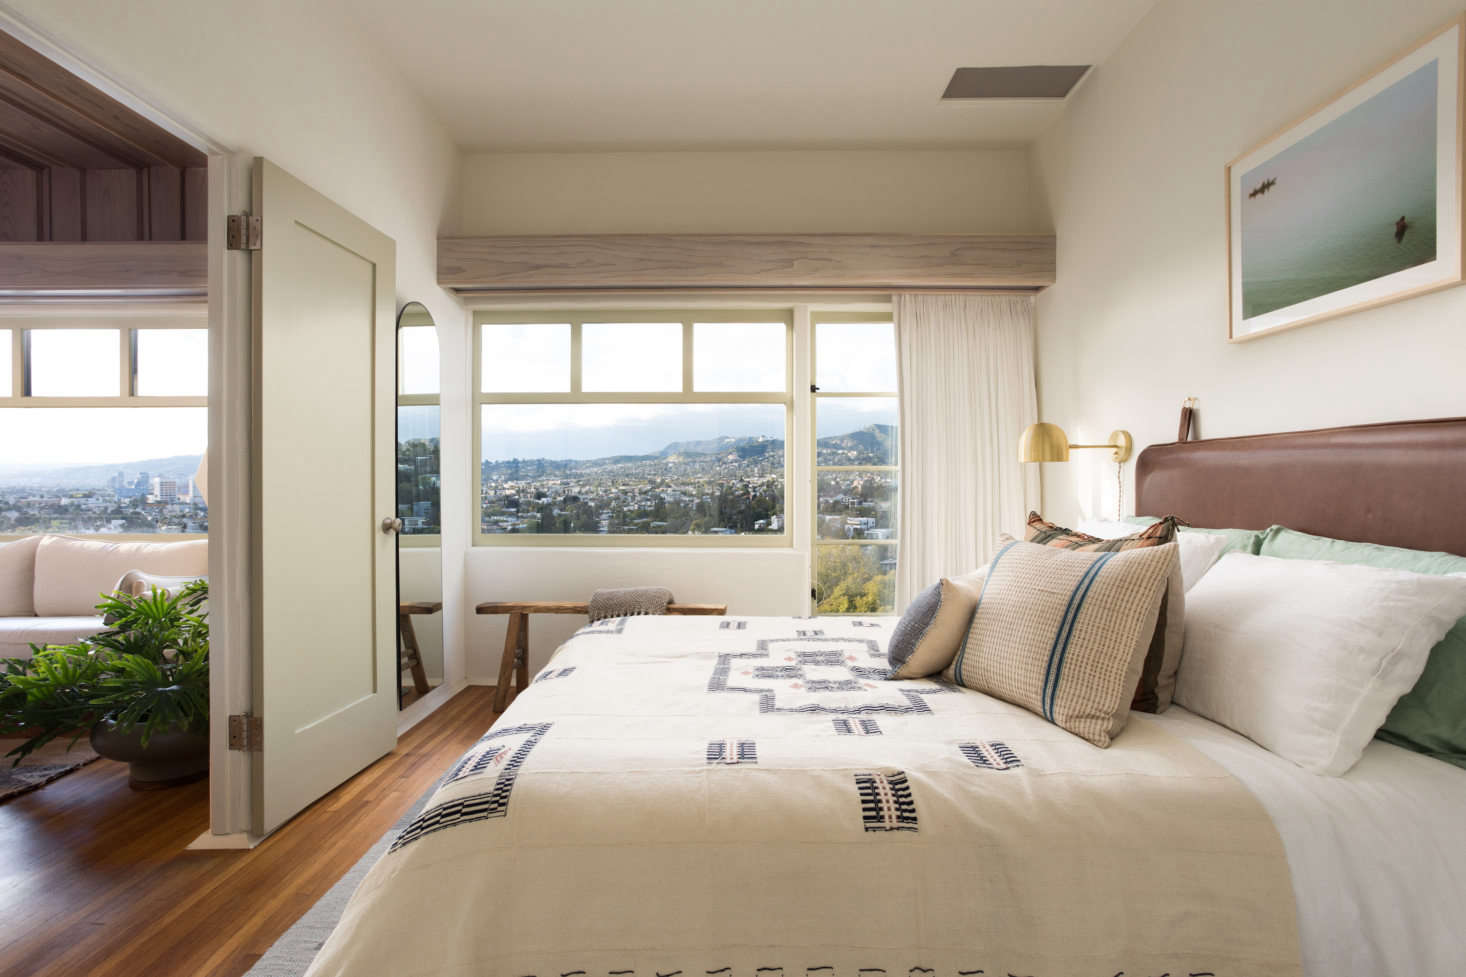 The small bedroom features linen bedding by Five/Six Textiles, a custom leather-wrapped headboard, and views of Los Feliz. Photograph by Virtually Here Studios.